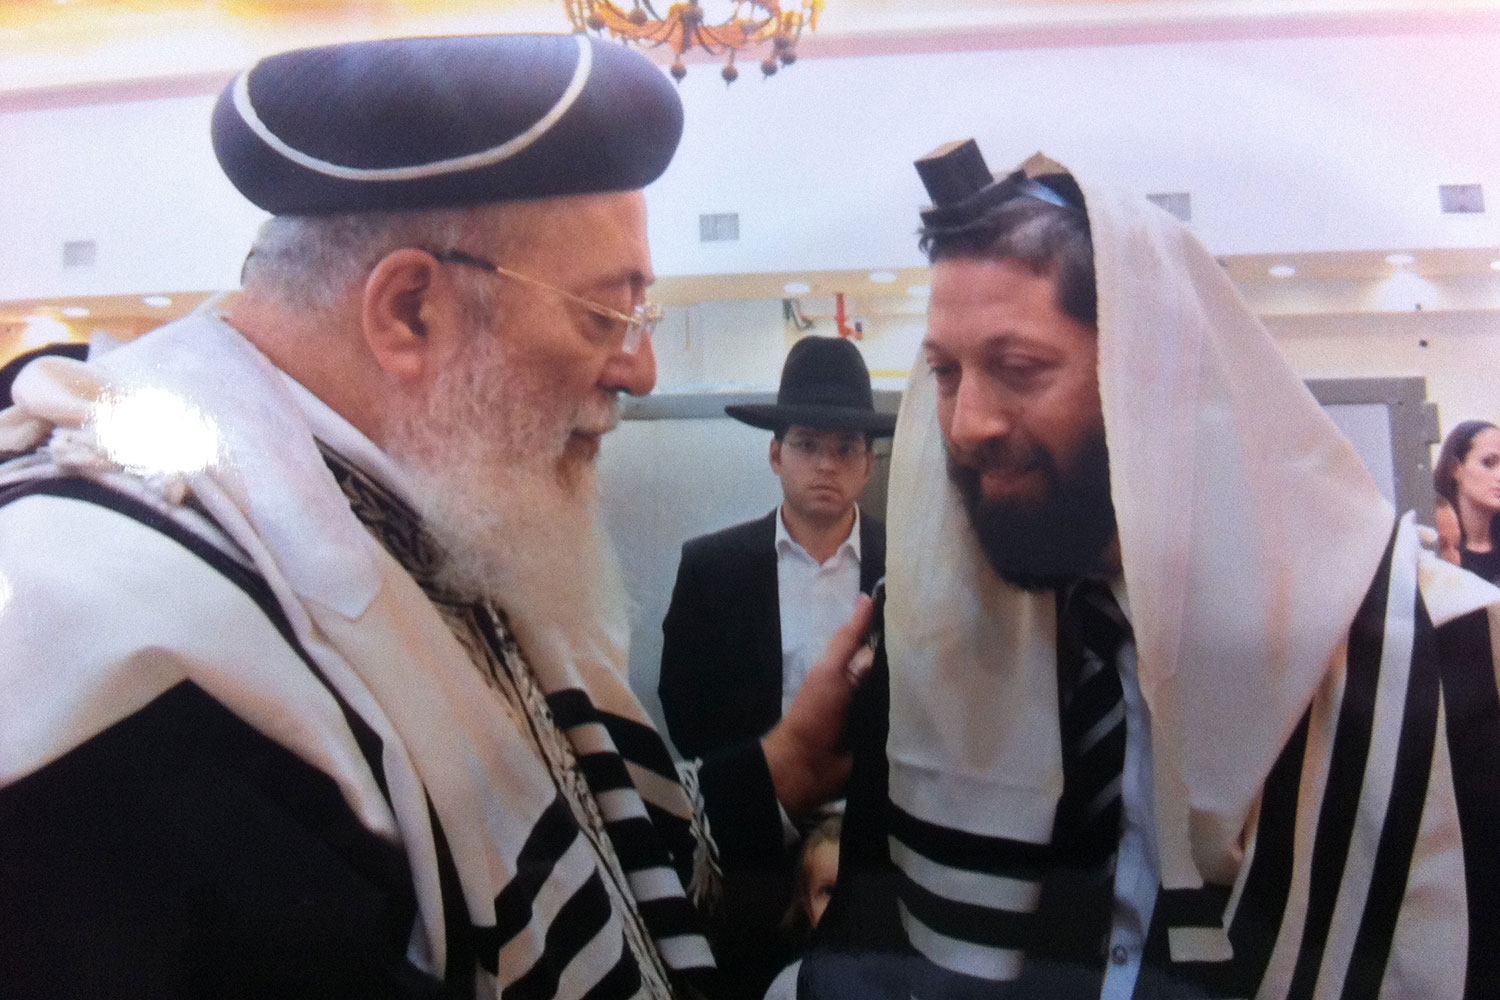 Dayan Oshinsky together with Rav Amar